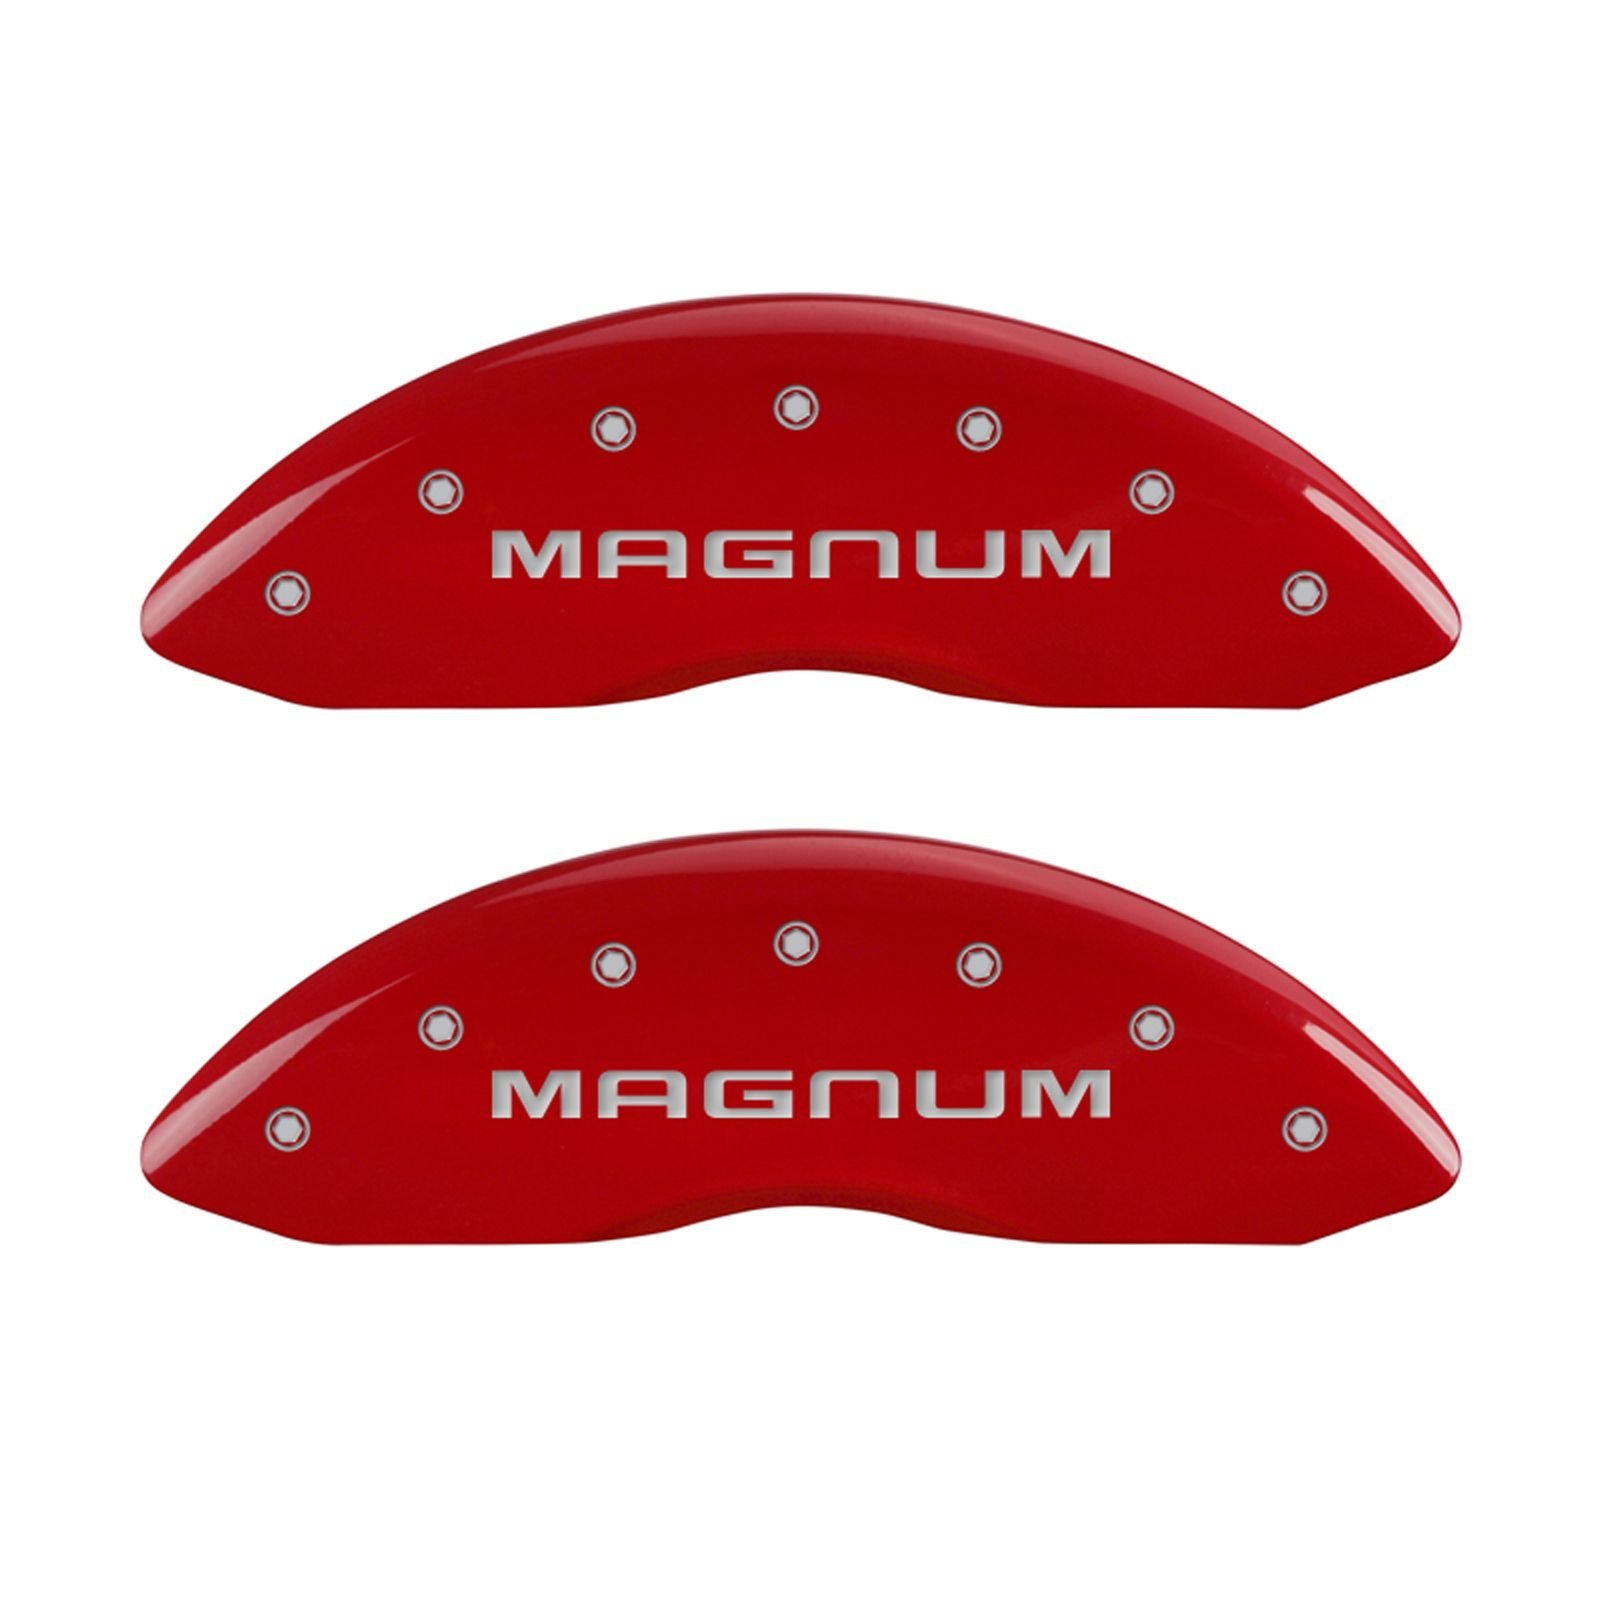 MGP Caliper Covers 12001SMGMRD 'Magnum' Engraved Caliper Cover with Red Powder Coat Finish and Silver Characters, (Set of 4)